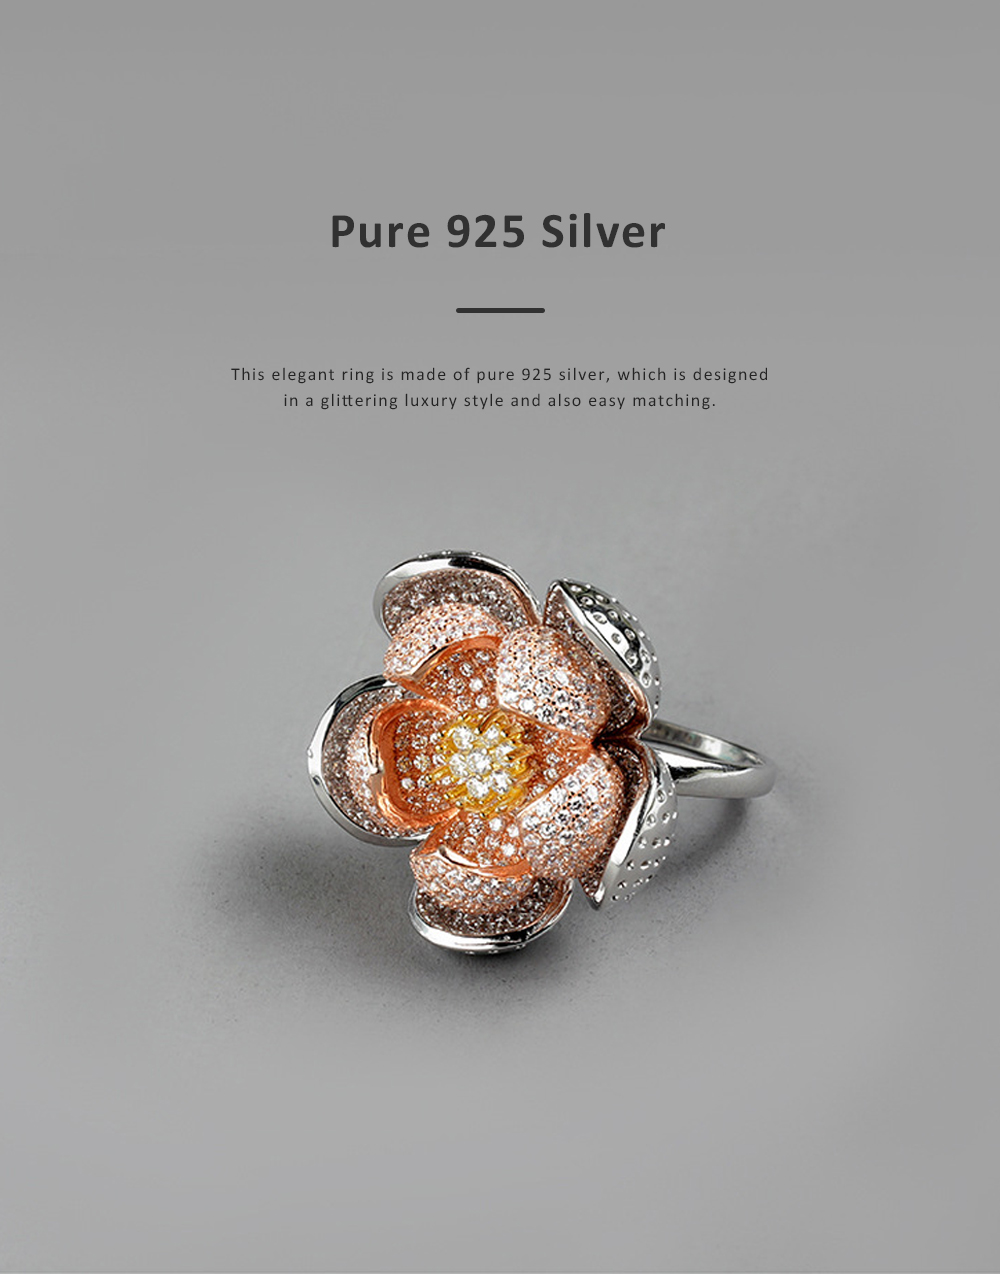 2020 Latest European Style S925 Silver Lotus Flower Ring in Vogue, Easy Matching Glittering Zircon Diamond Ring 4